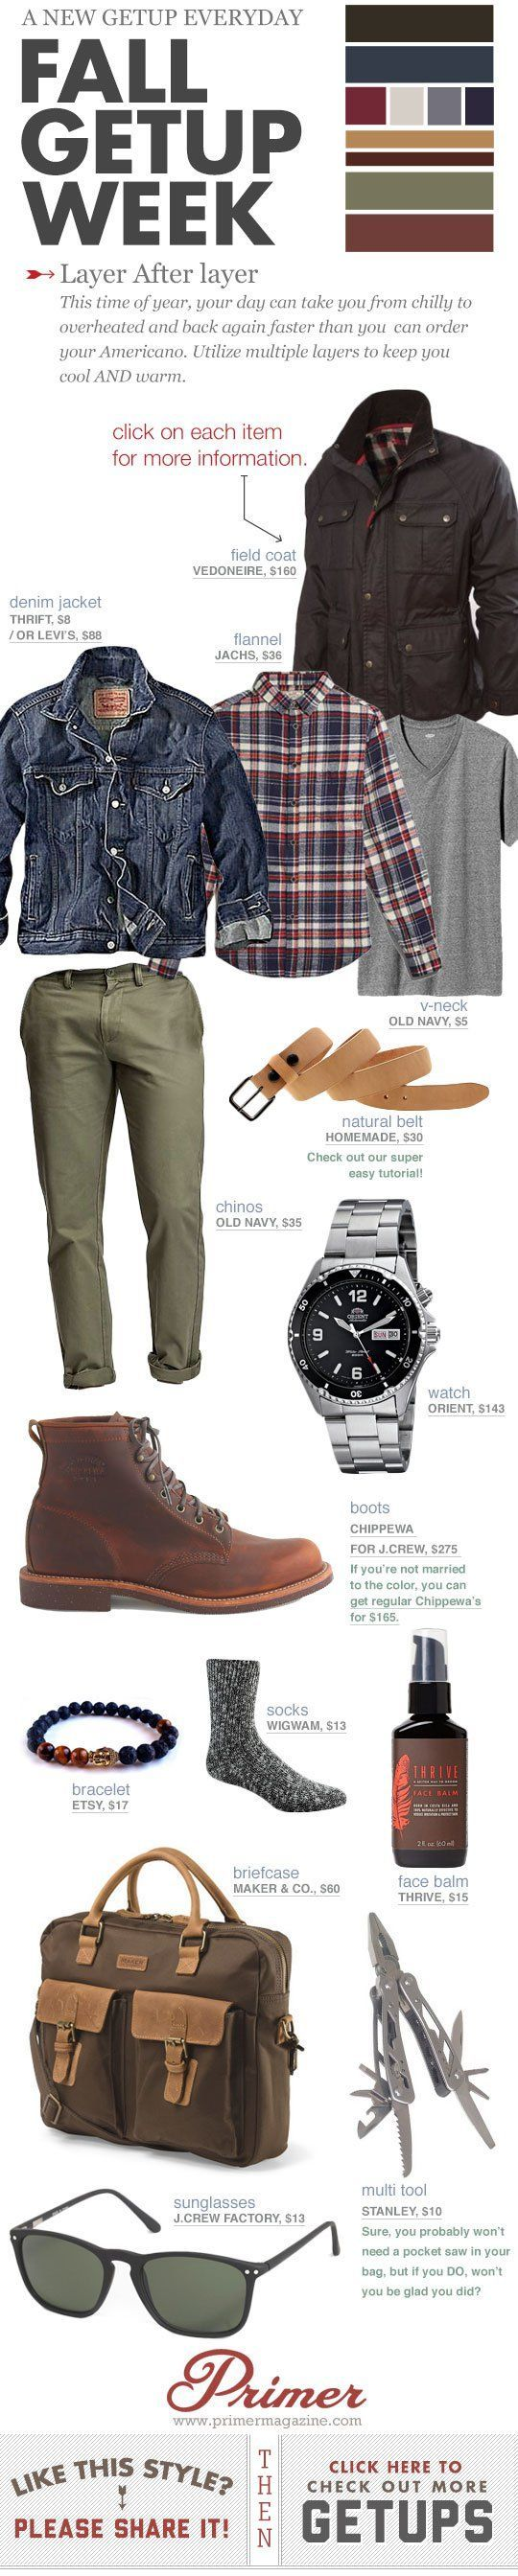 Fall Getup Week: Layers After Layers | Primer